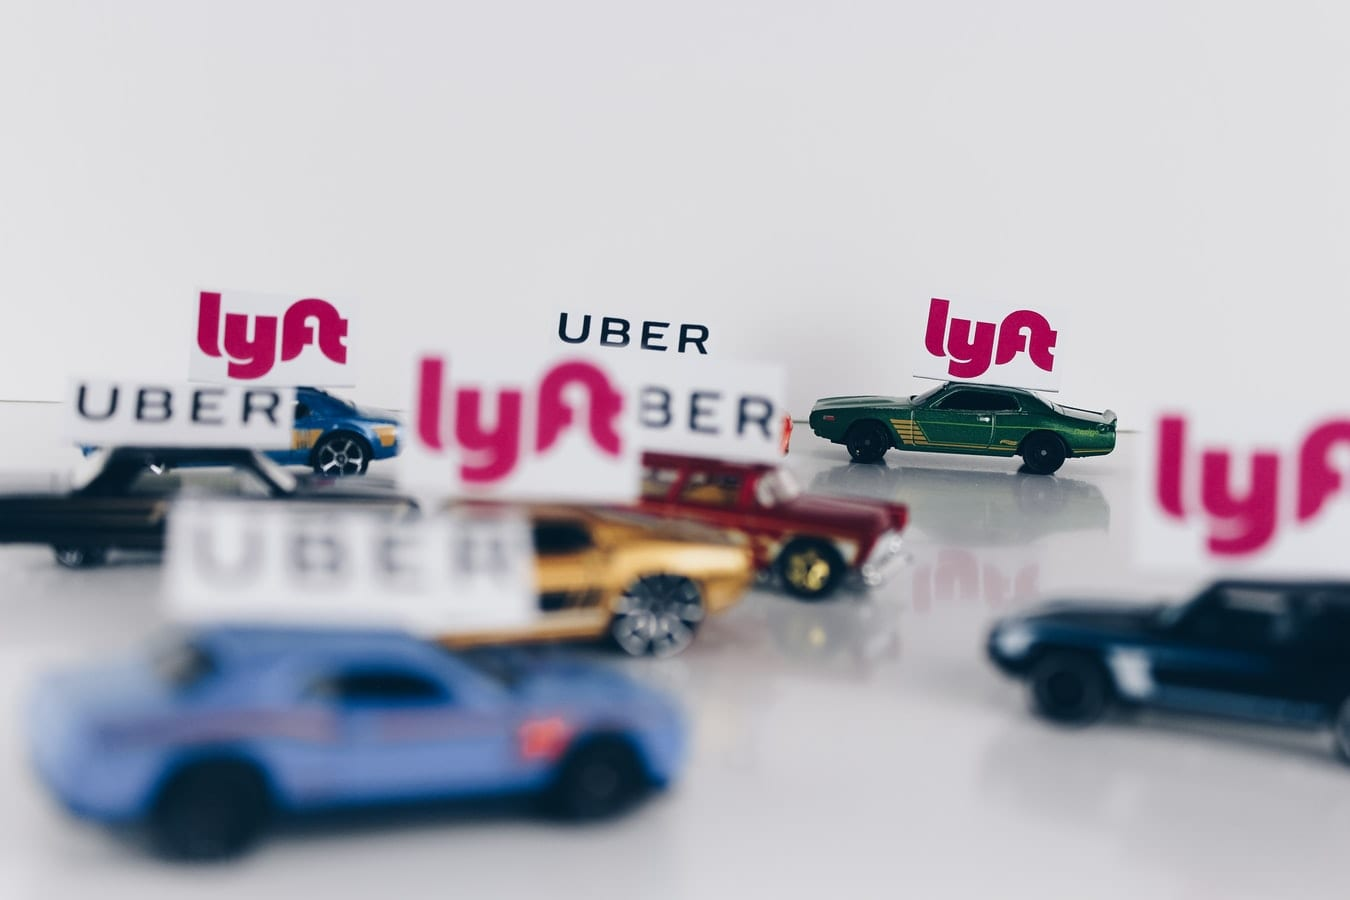 Epic Integration With Lyft Part Of Trend Expanding EHR Borders